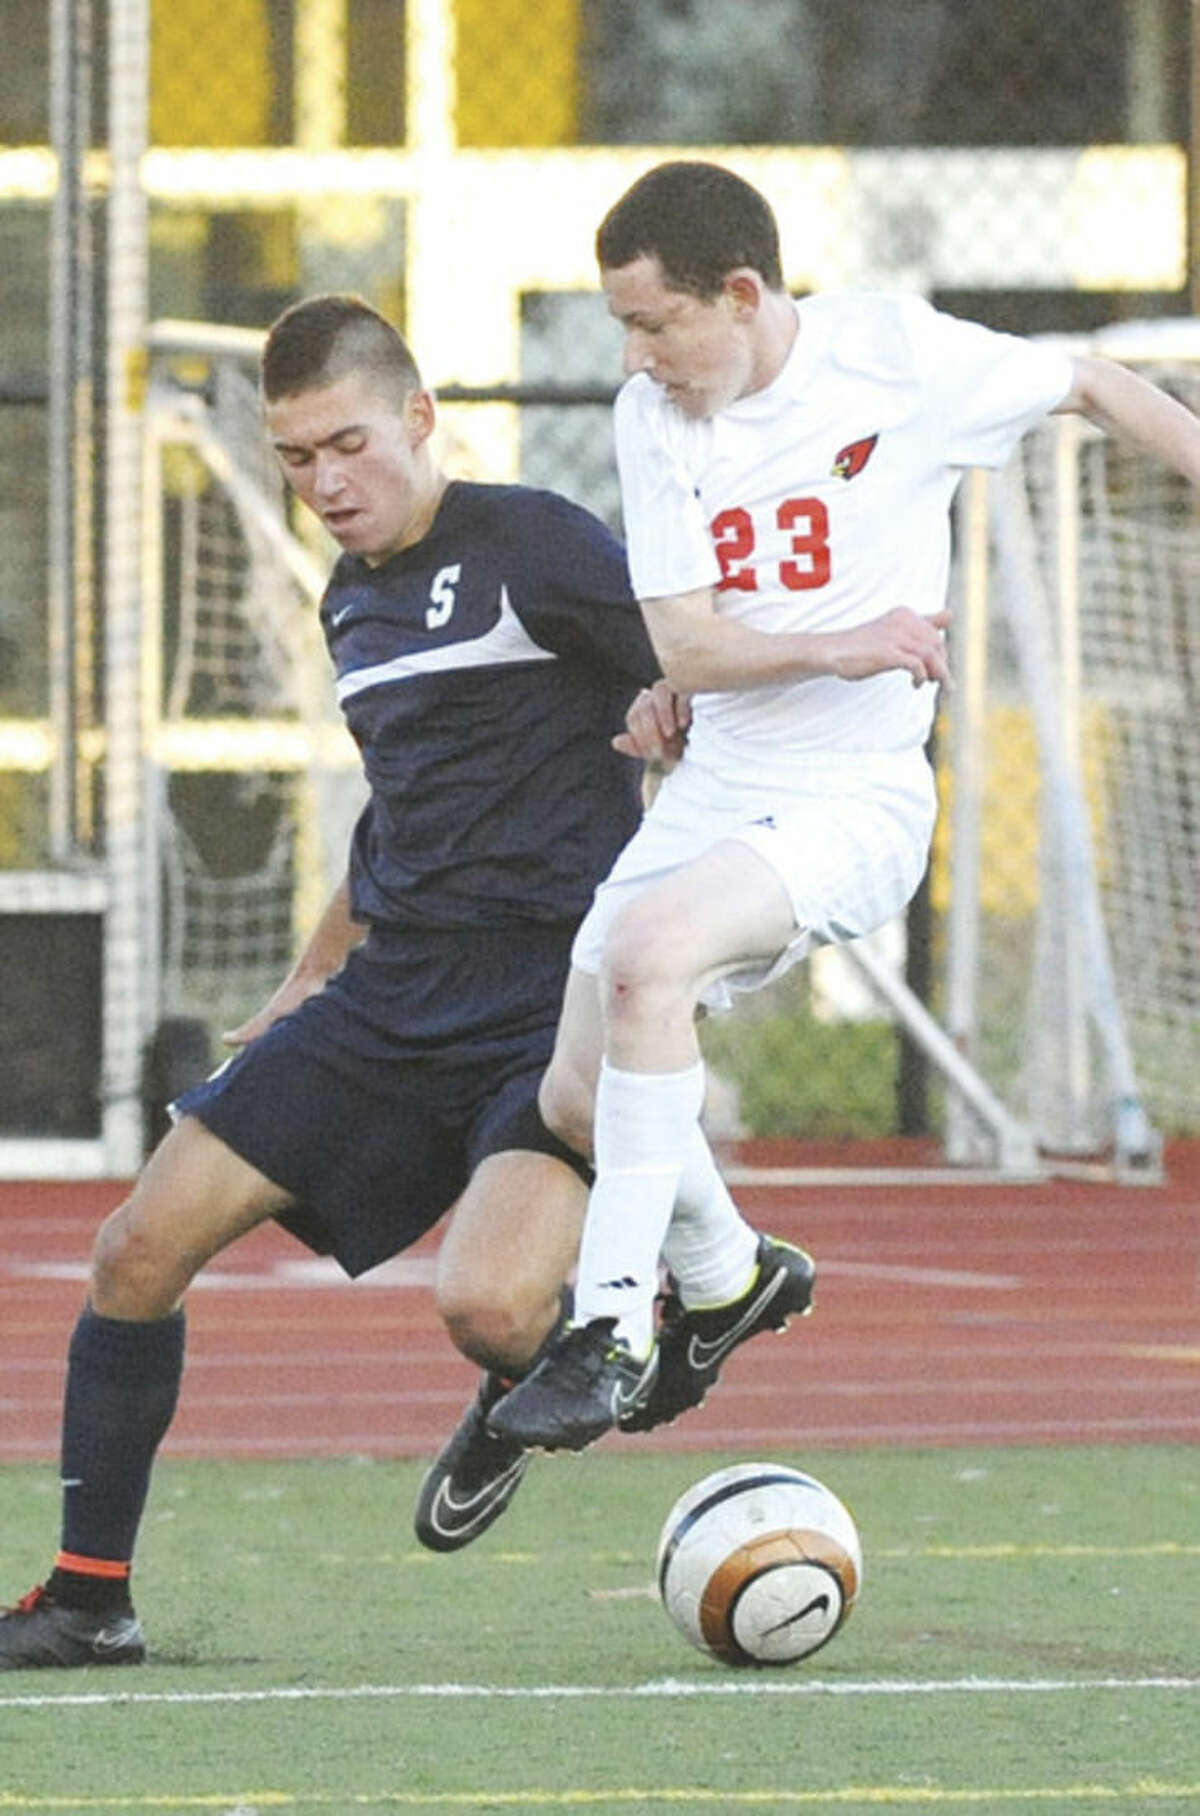 Hour photo/Matthew Vinci Staples' Nate Argosh, left, fights Greenwich's Zachary Friedman for possession during Monday afternoon's game.